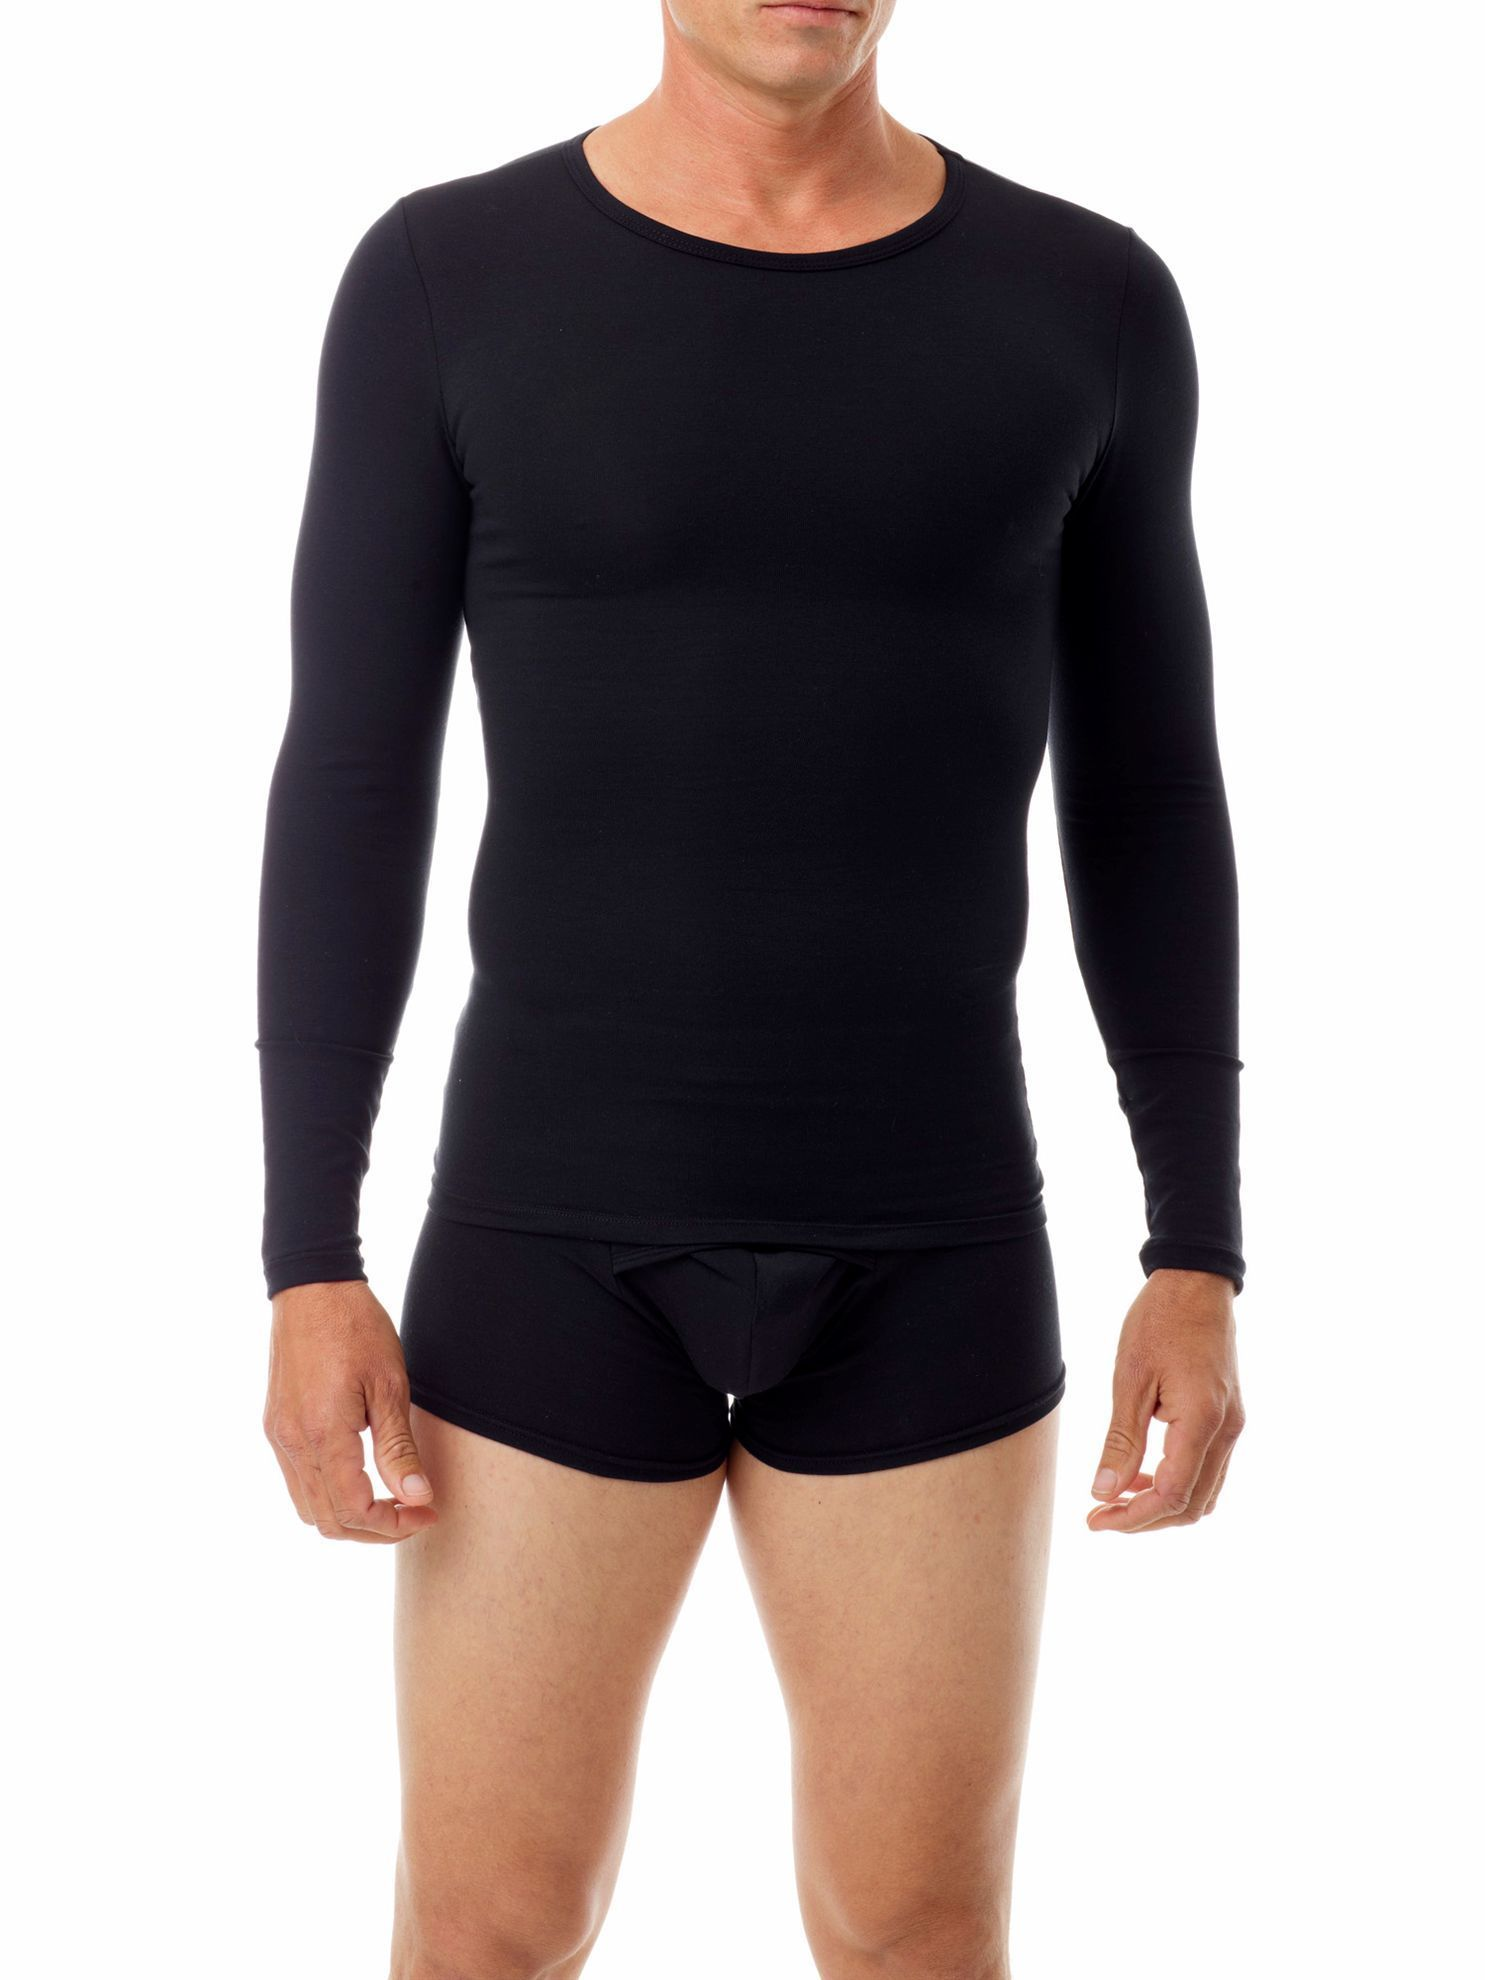 Picture of Cotton Spandex Crew Neck Long Sleeves